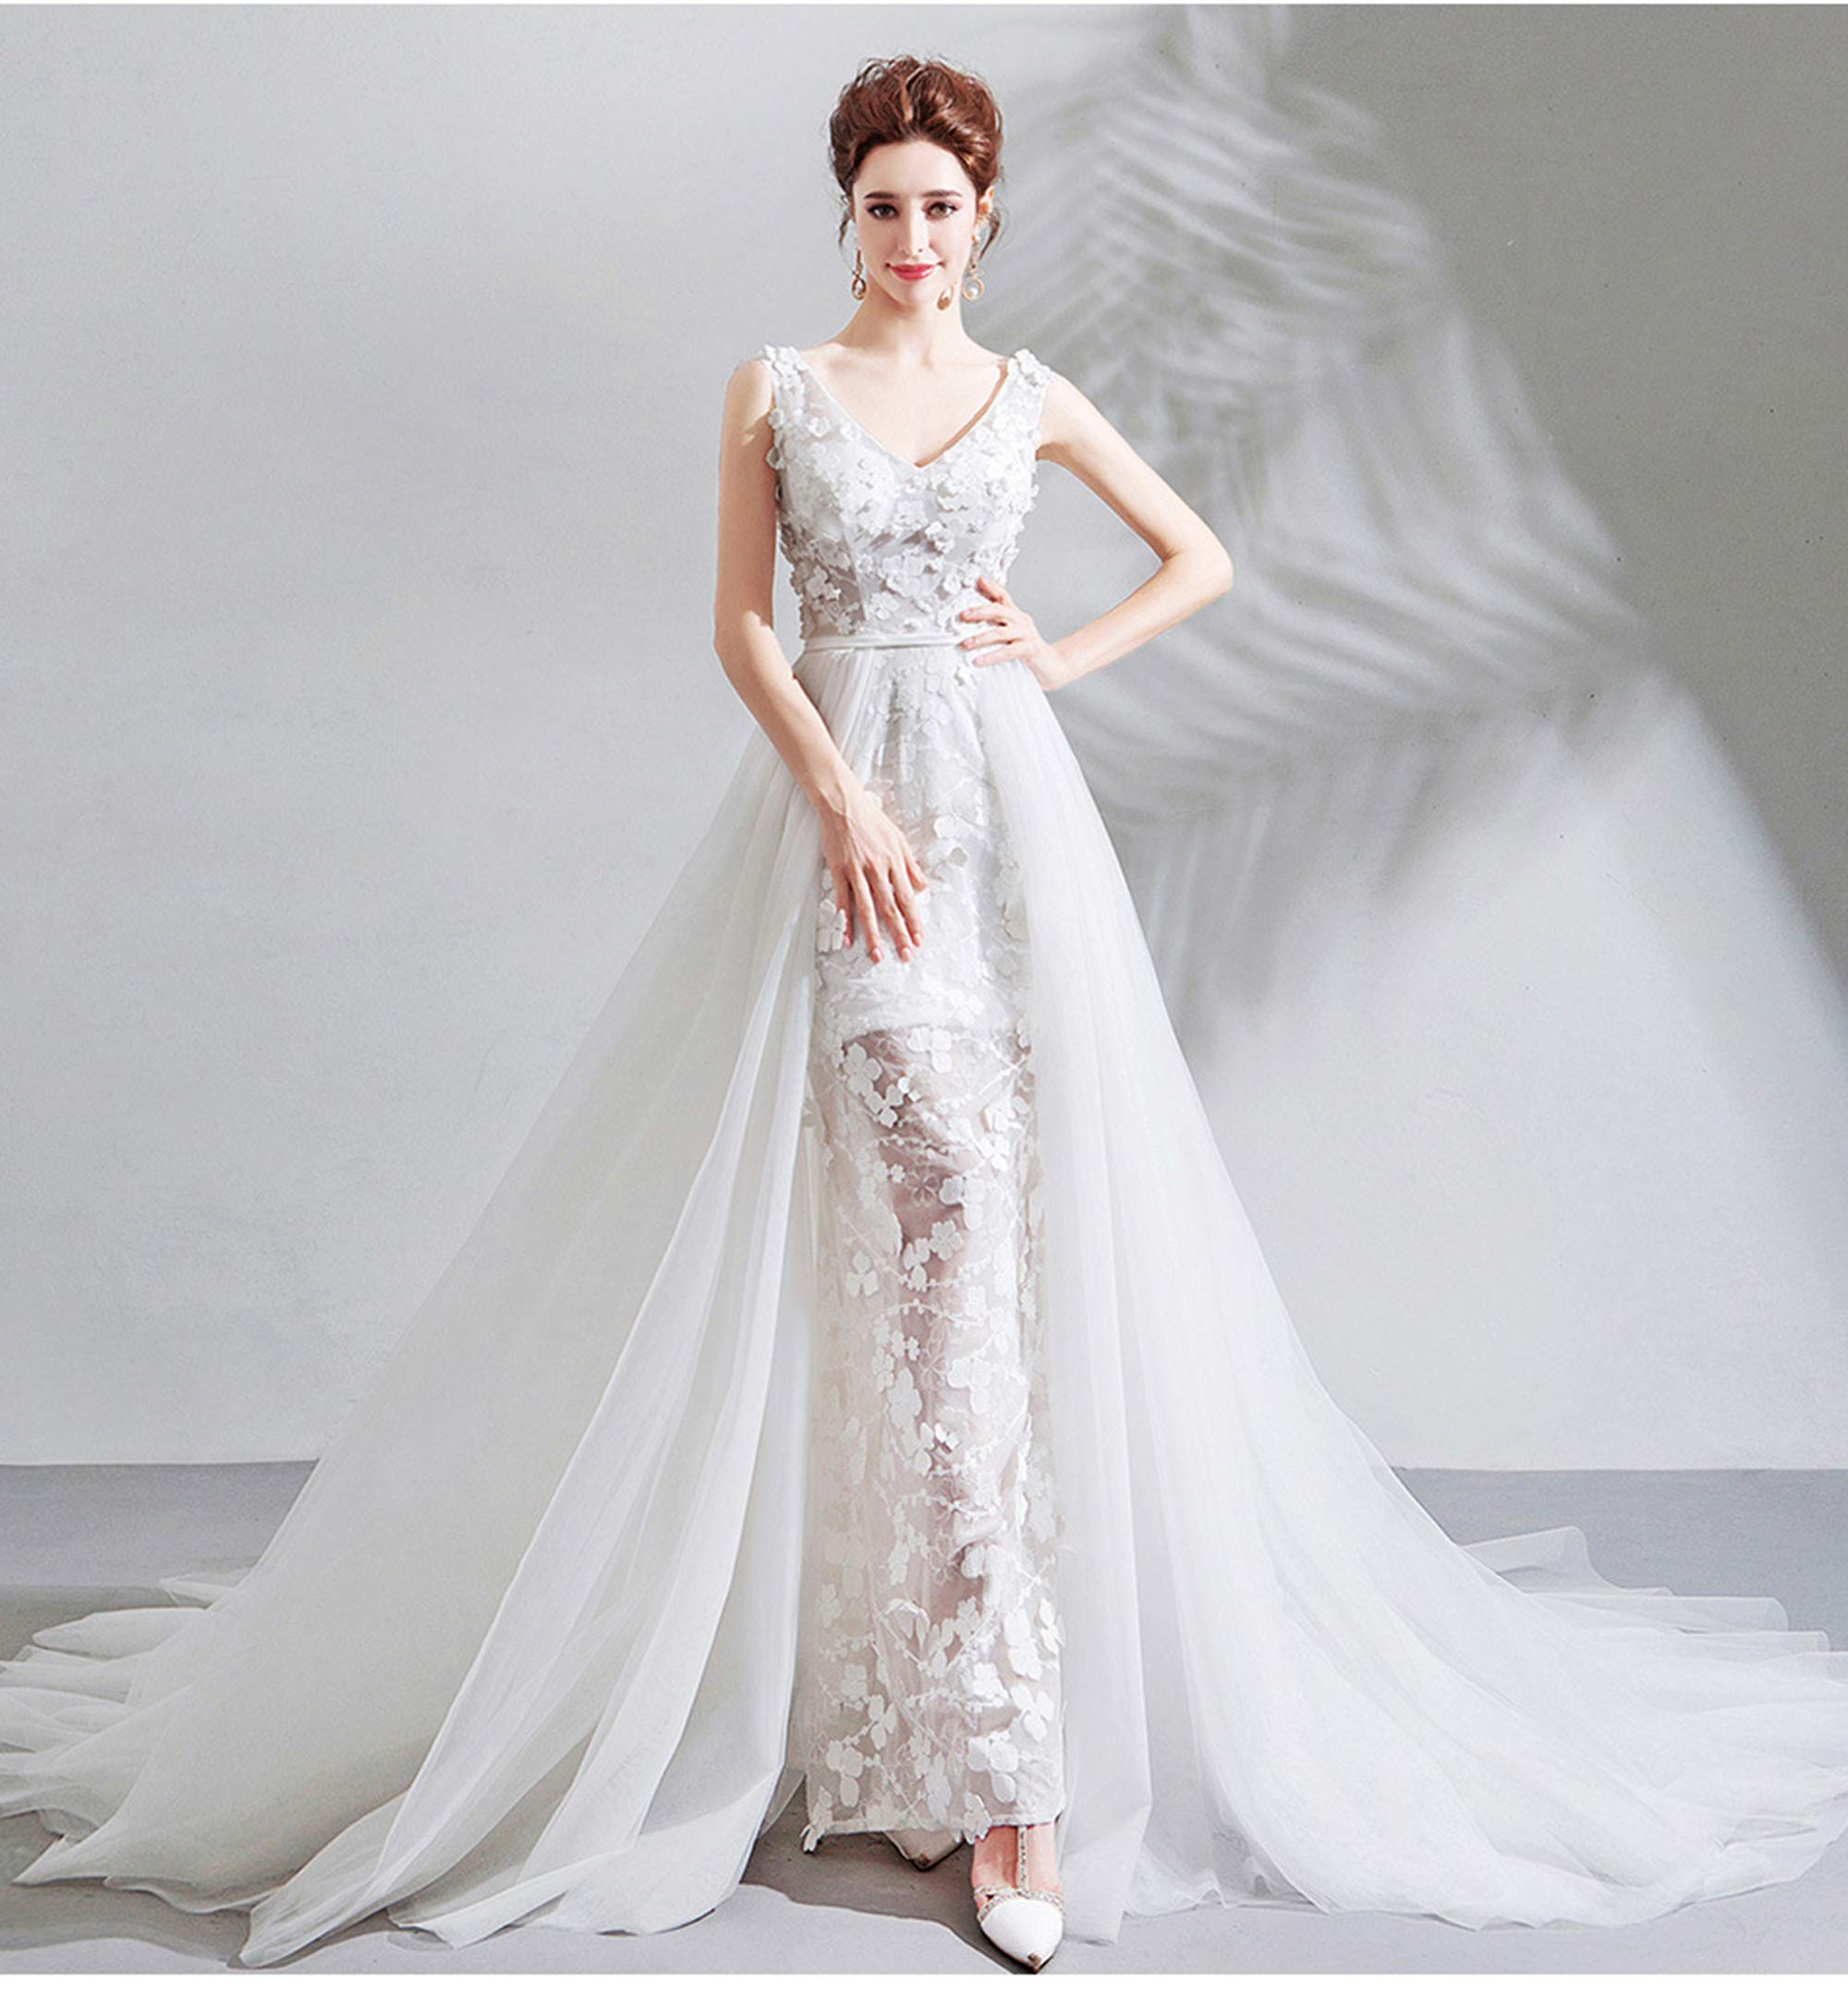 NOMSOCR Women's Lace V Neck Sleeveless Wedding Dresses Mermaid Bridal Gown (M, White) by NOMSOCR (Image #2)